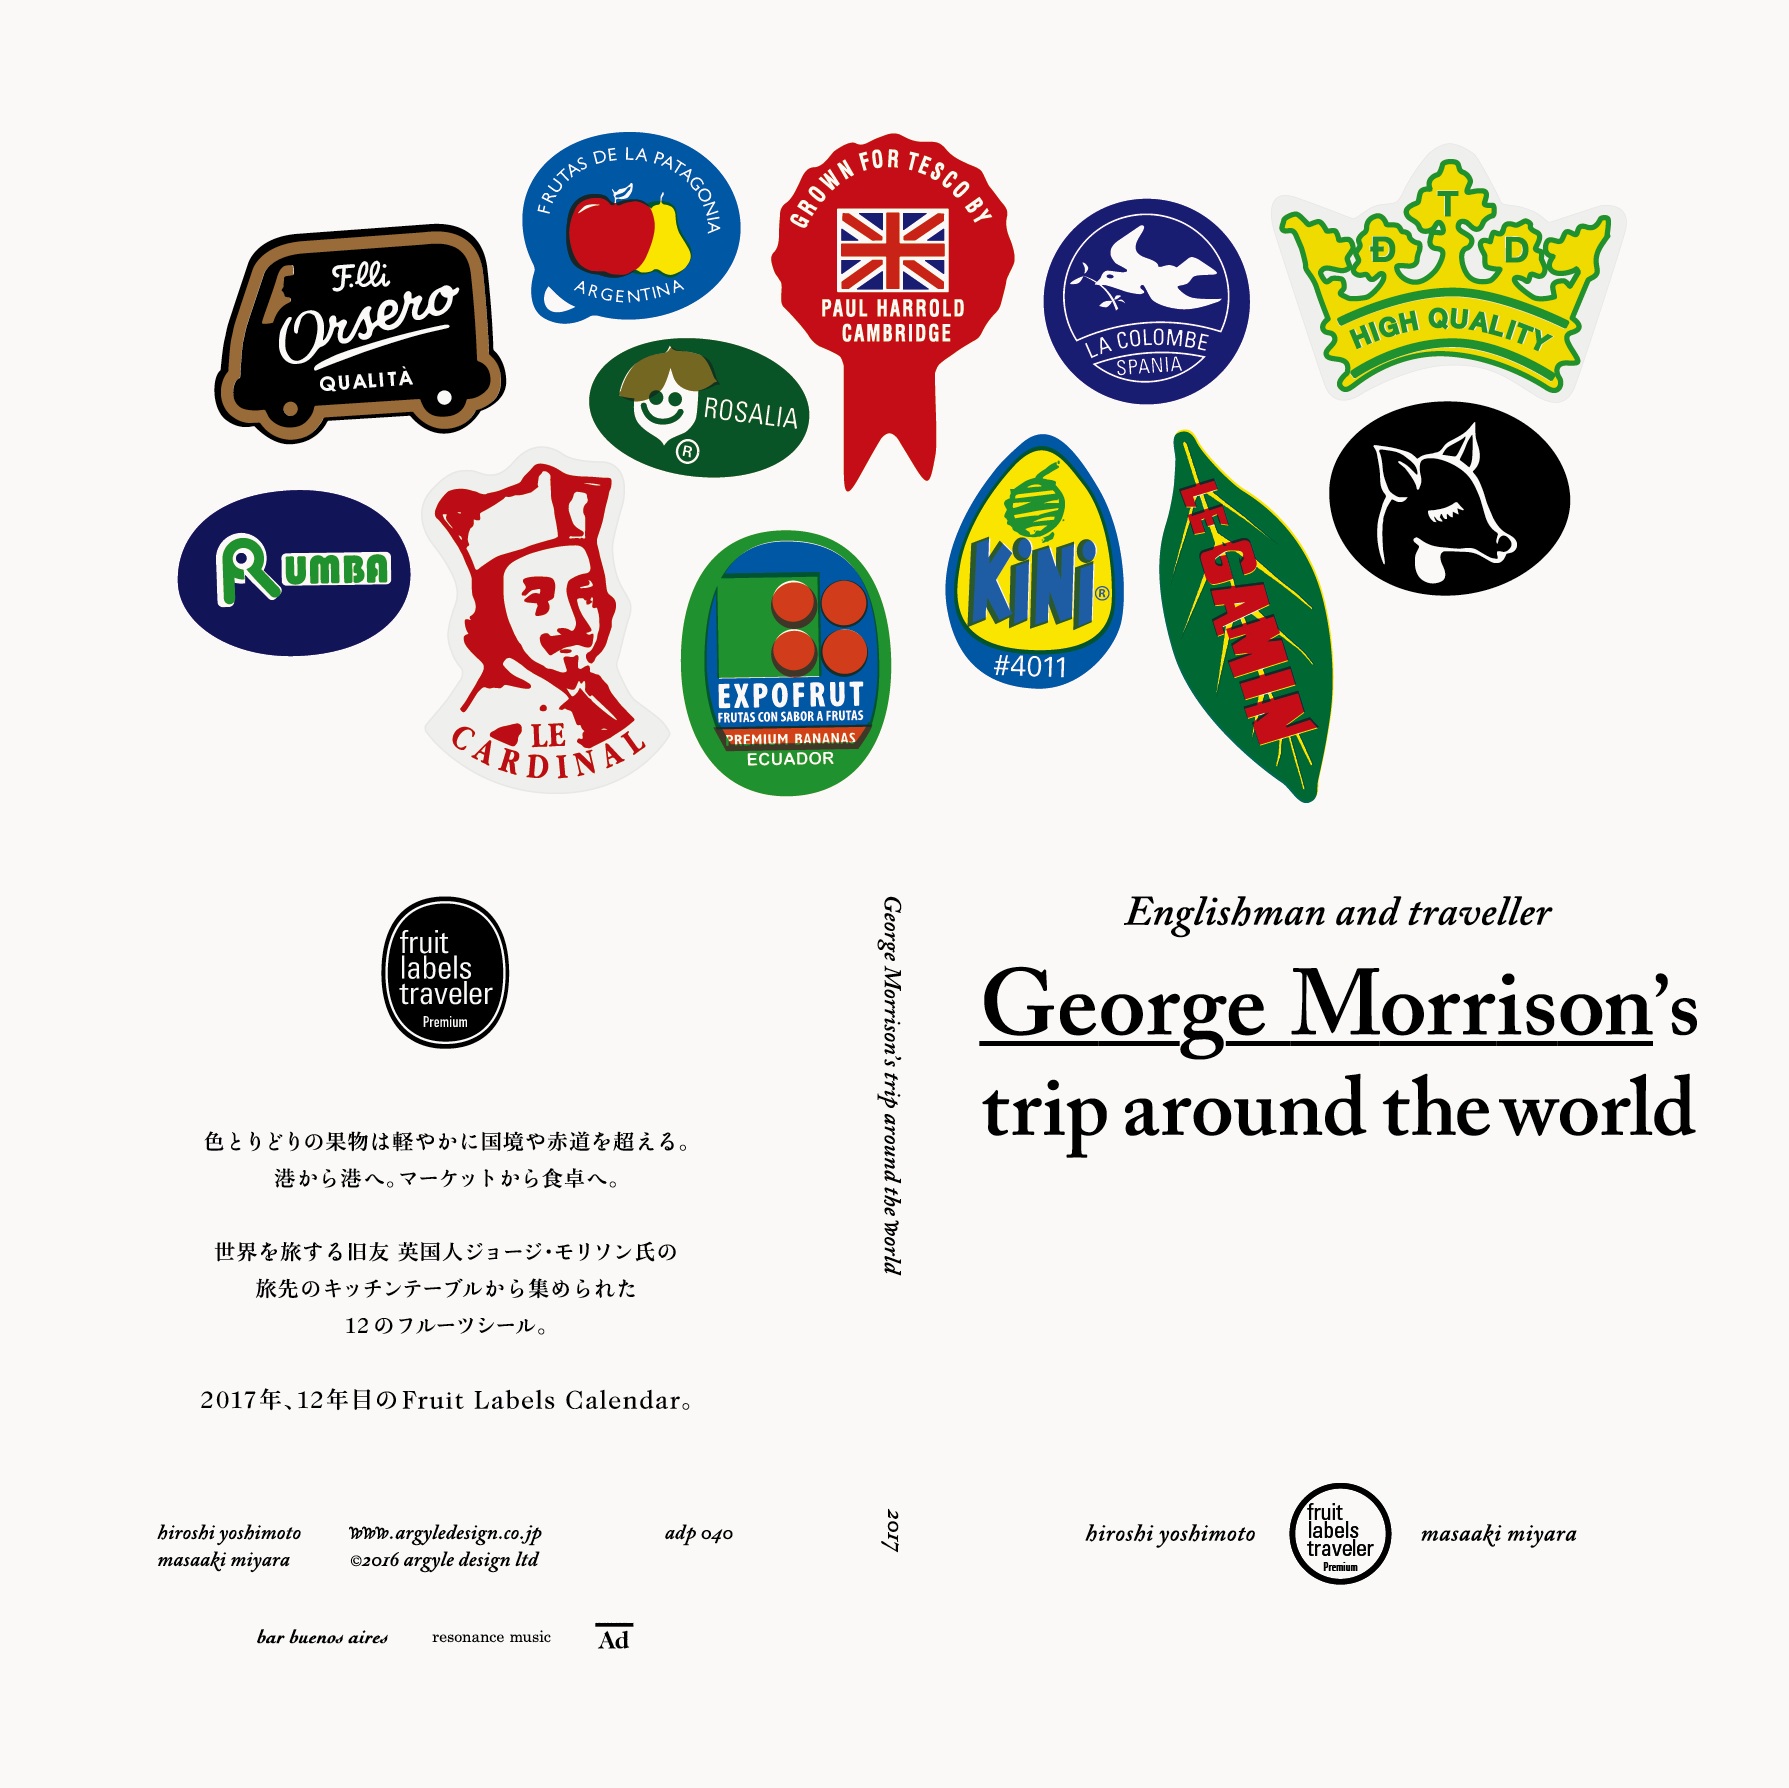 George Morrison's Trip Around the World  | Fruit Labels Traveler |  Calendar 2017